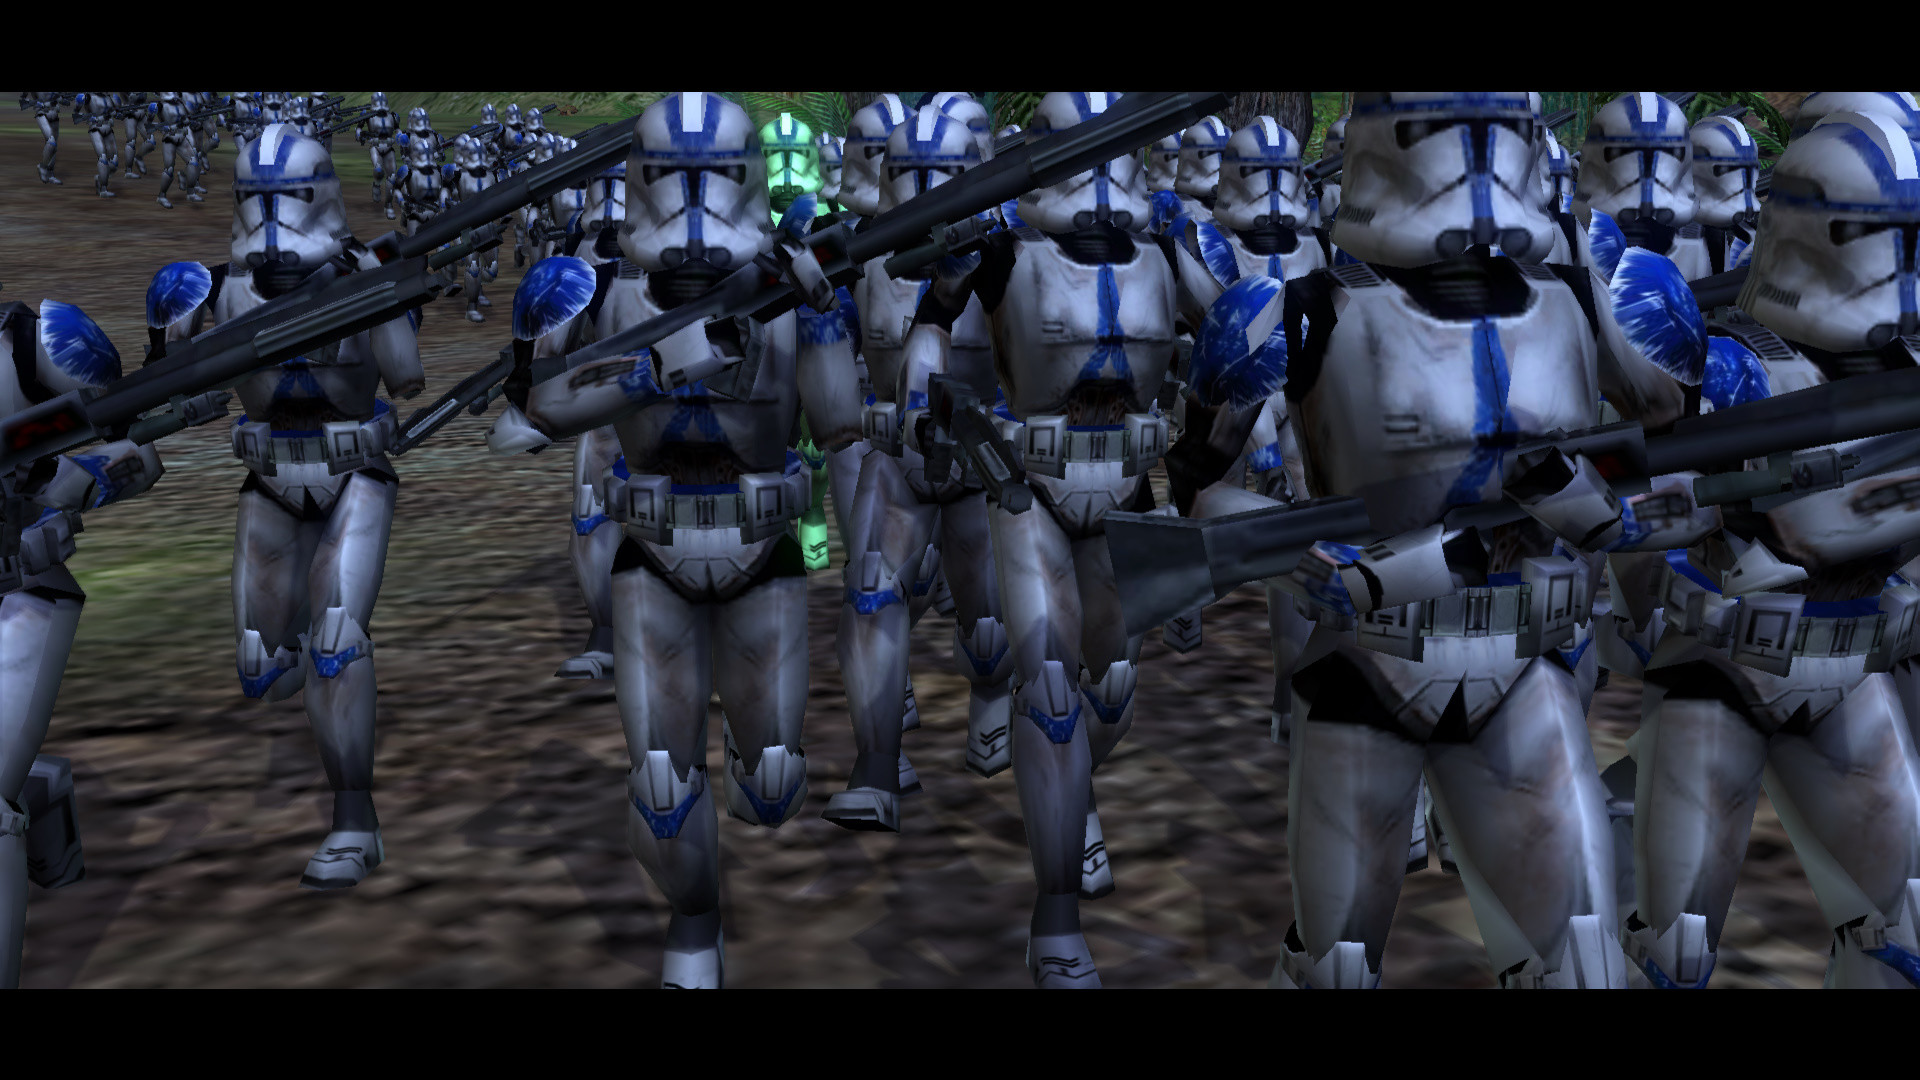 1920x1080 jhawk1945 - Star Wars Battlefront Forums and Star Wars Episode VII Forums